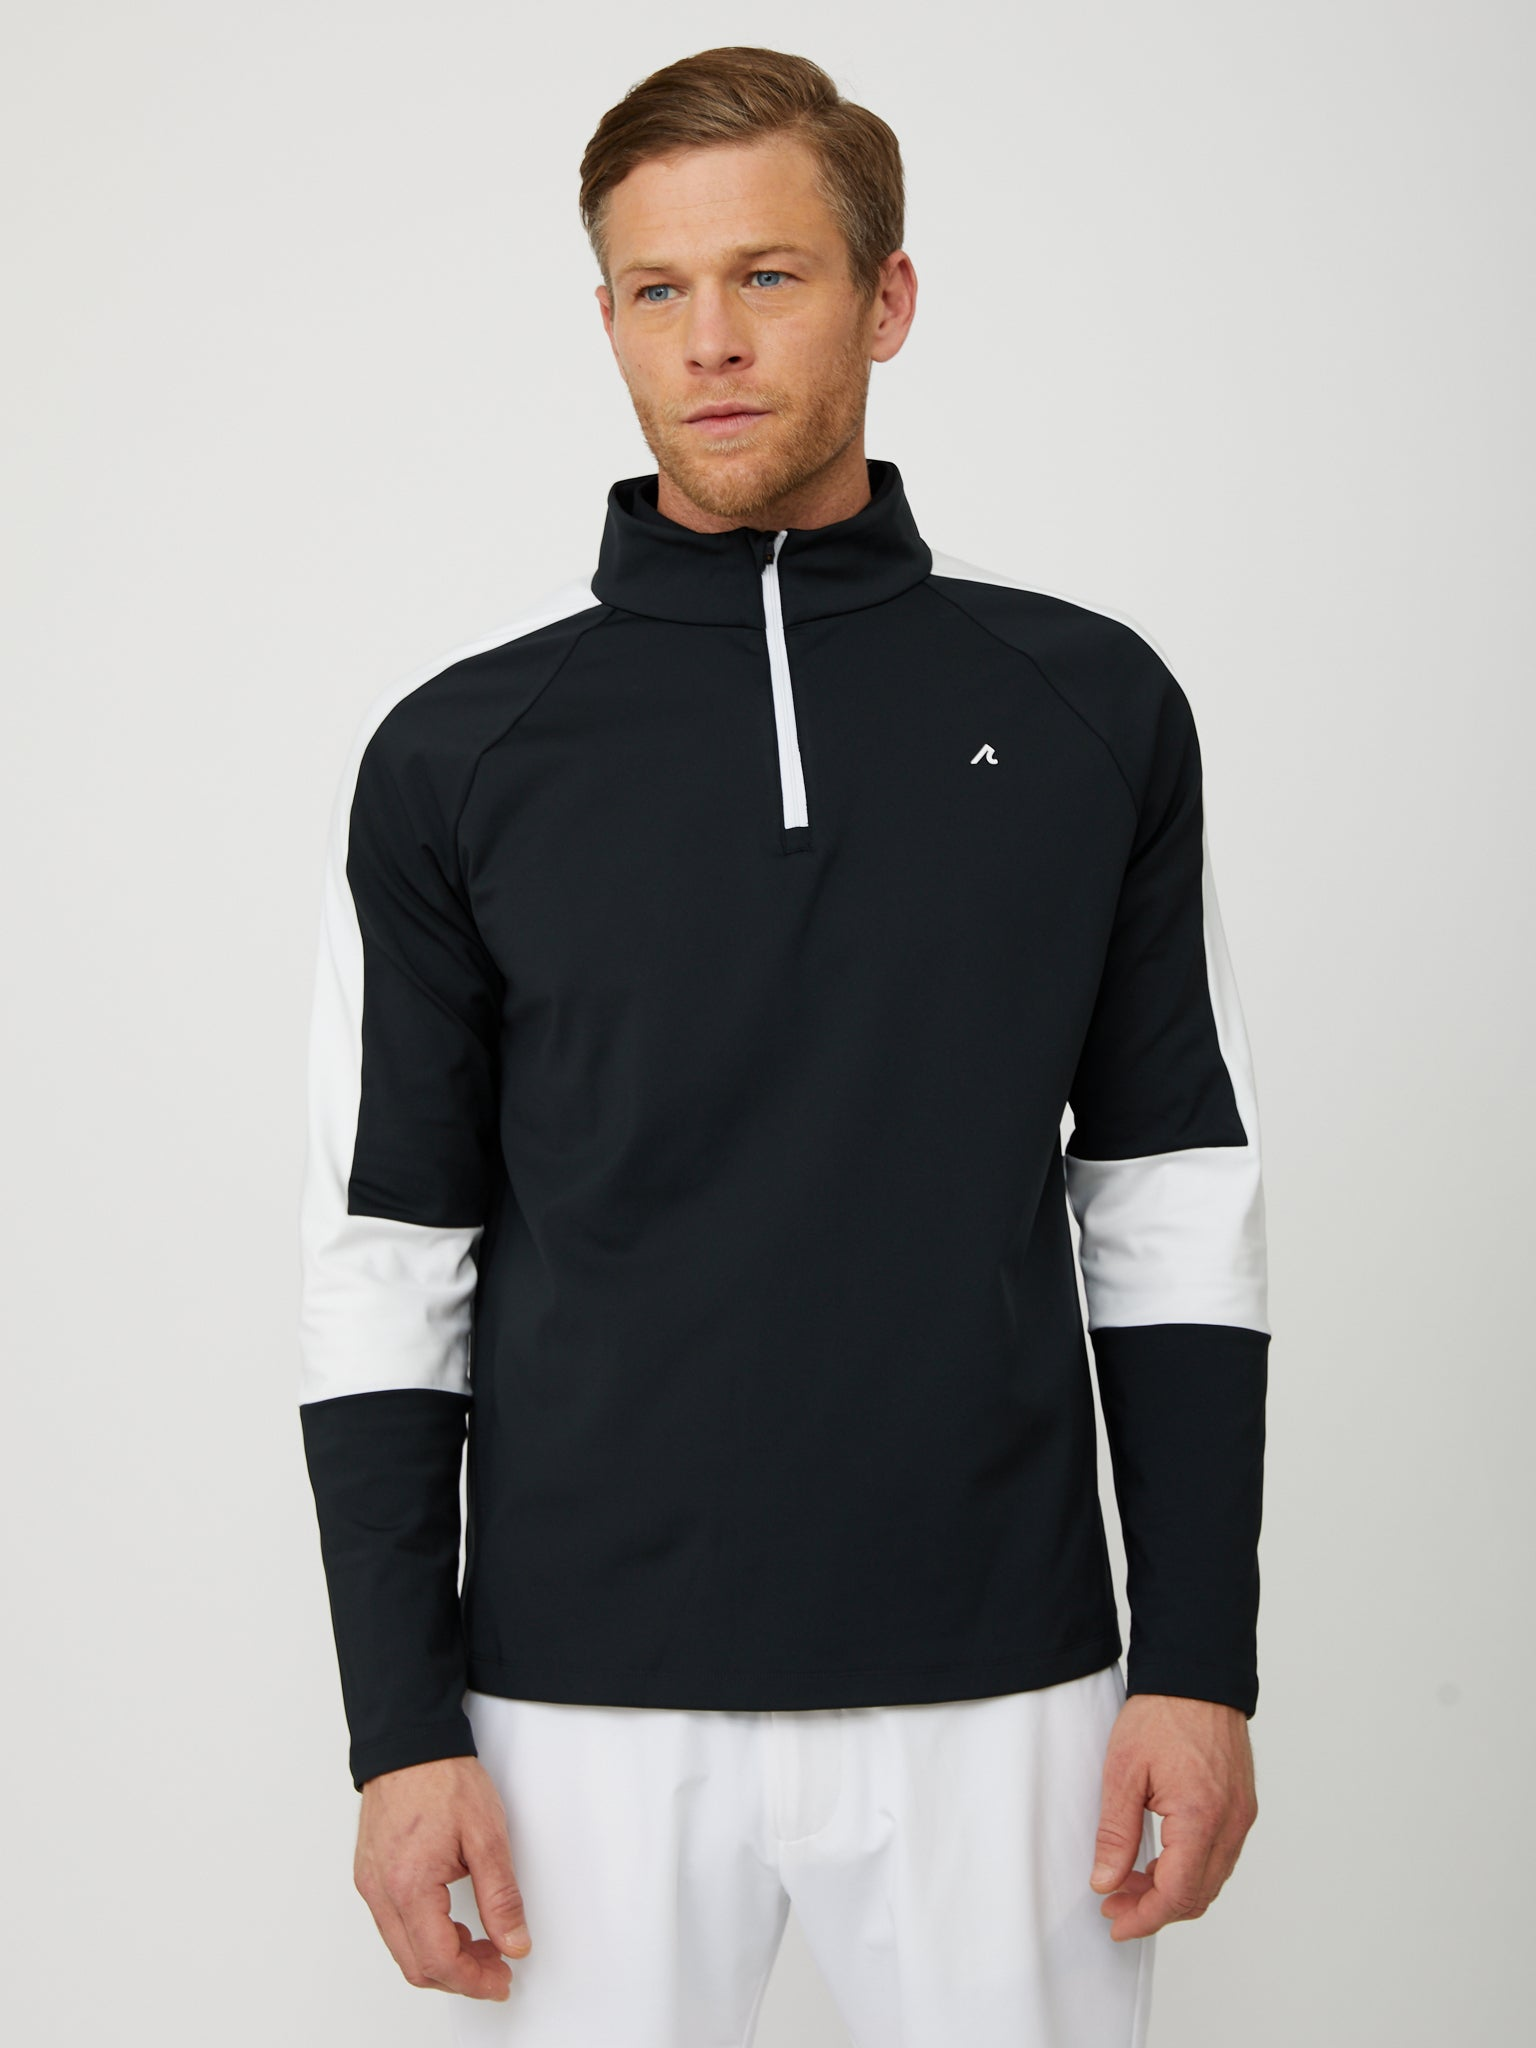 Fowler Quarter Zip in Black/White